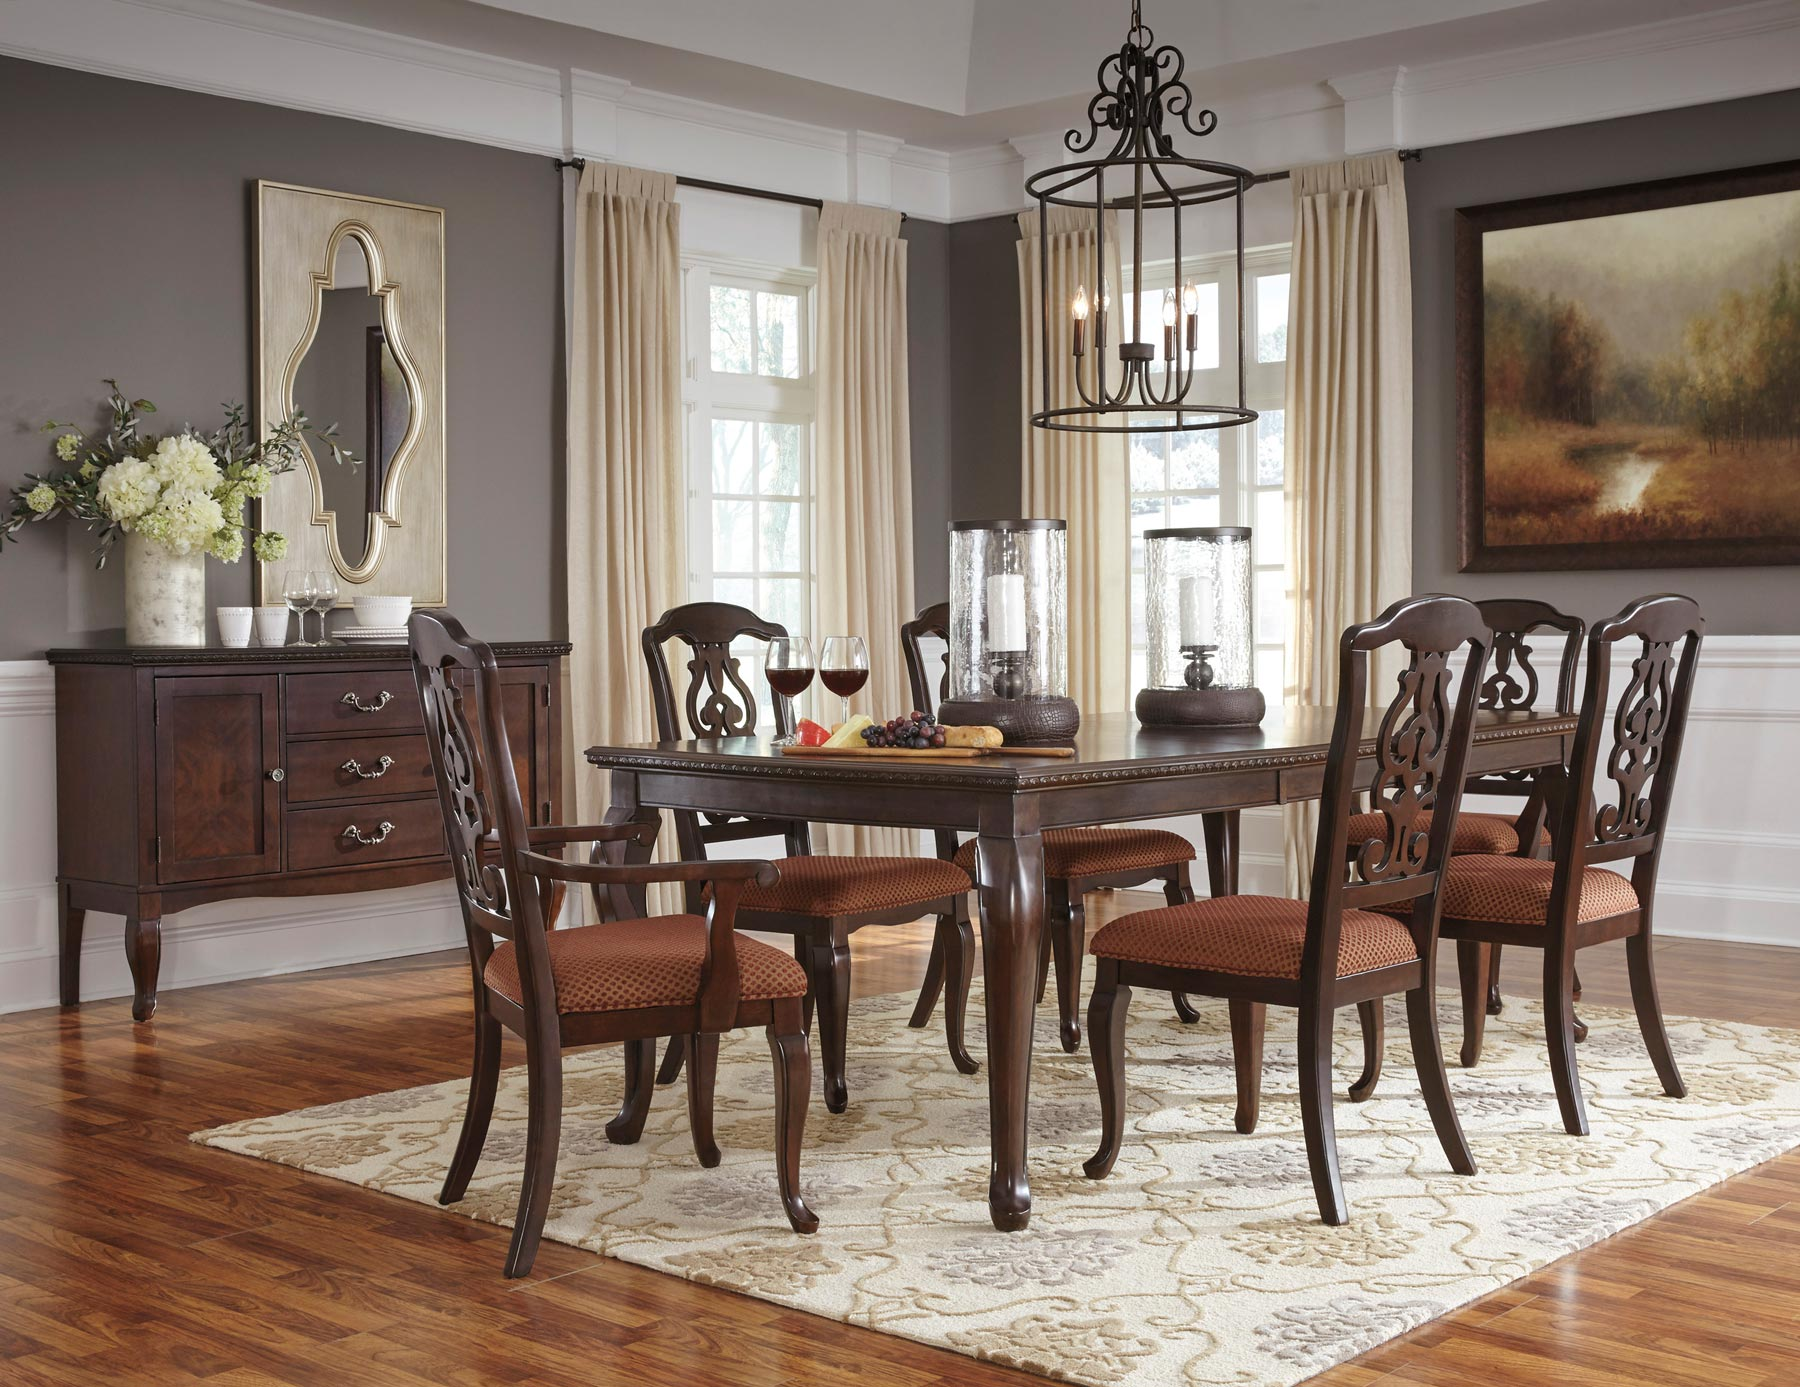 Gladdenville 8 Piece Dining Room Set  Gonzalez Furniture. Decorative Wine Glasses. Citrix Virtual Data Room. Office Decoration. Decorative Bankers Box. Coastal Wall Decor. Decorate Rooms. Changing Room Tent. Room And Board Furniture